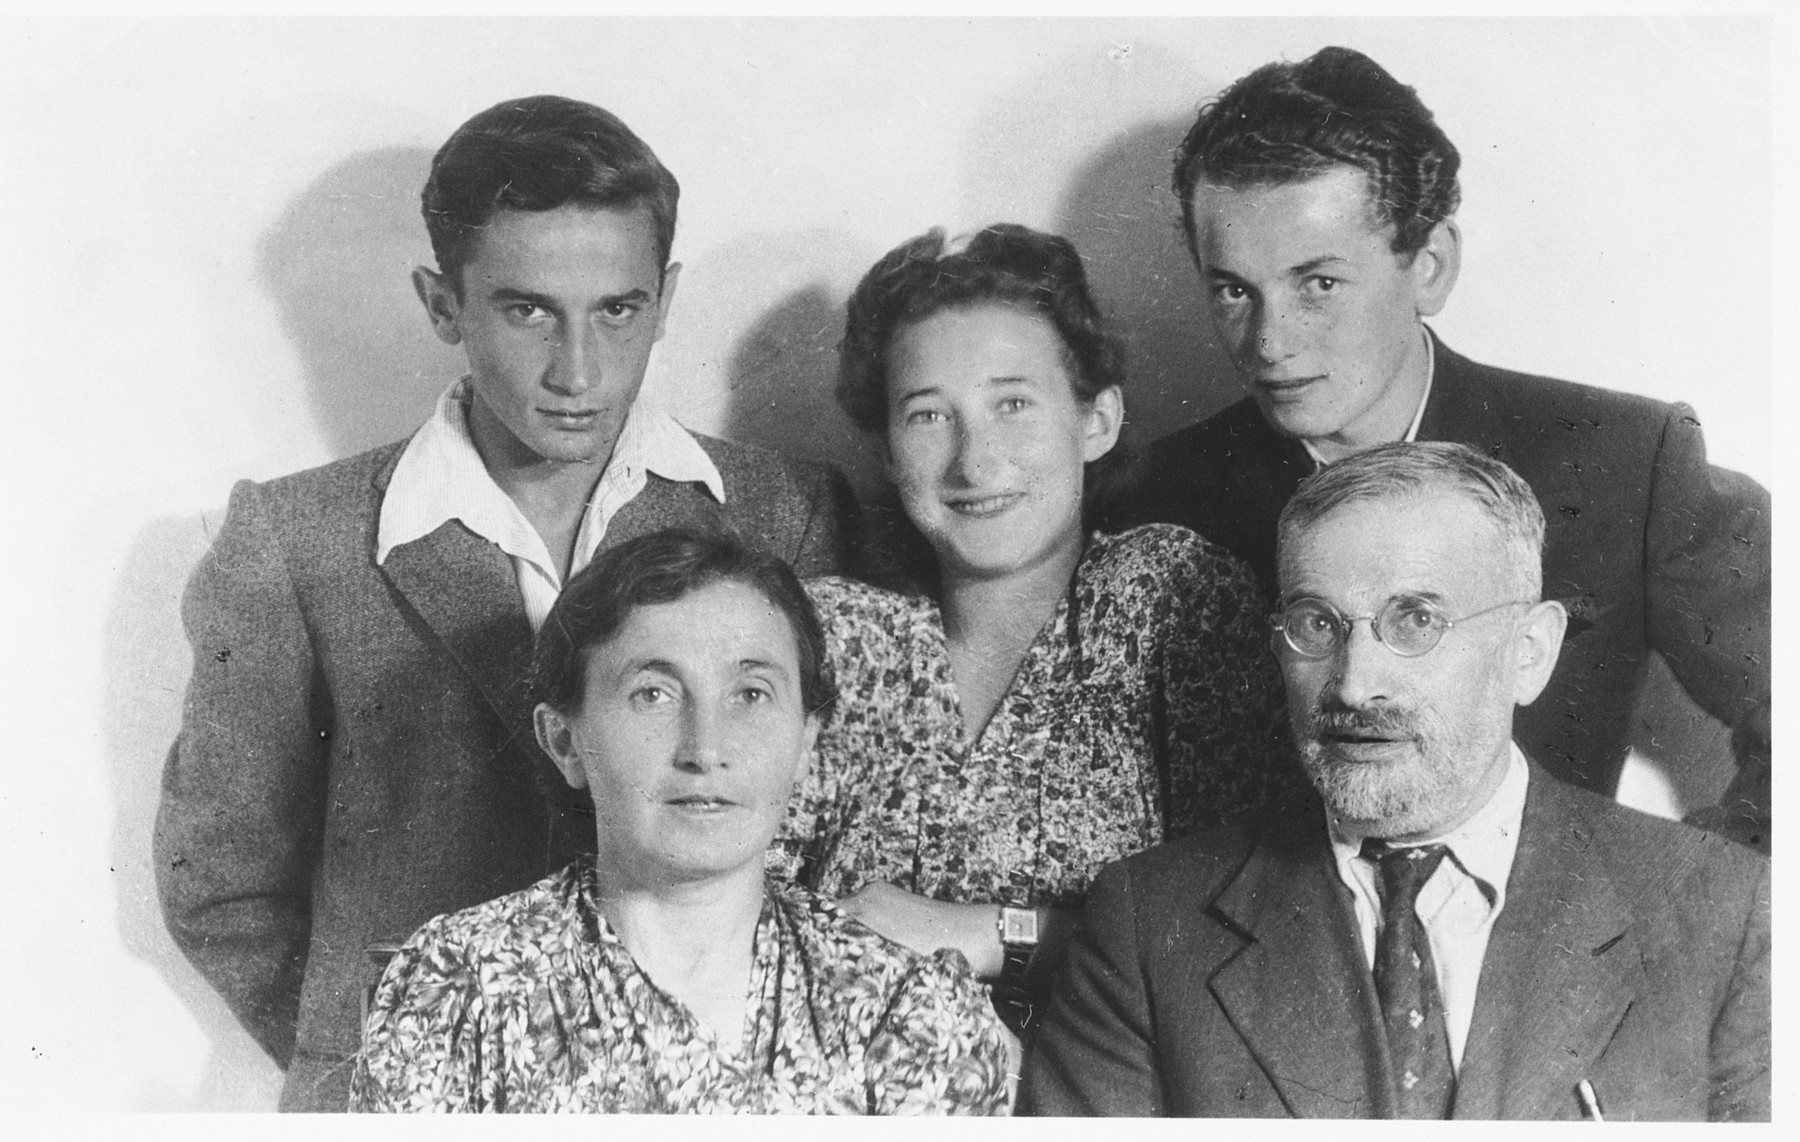 The Pinkus family poses for a family portrait in Florence, Italy.  Seated in front are Avram and Chaja Pinkus.  Behind them are Oskar, Belcia, and Belcia's husband, Benek Weissman.